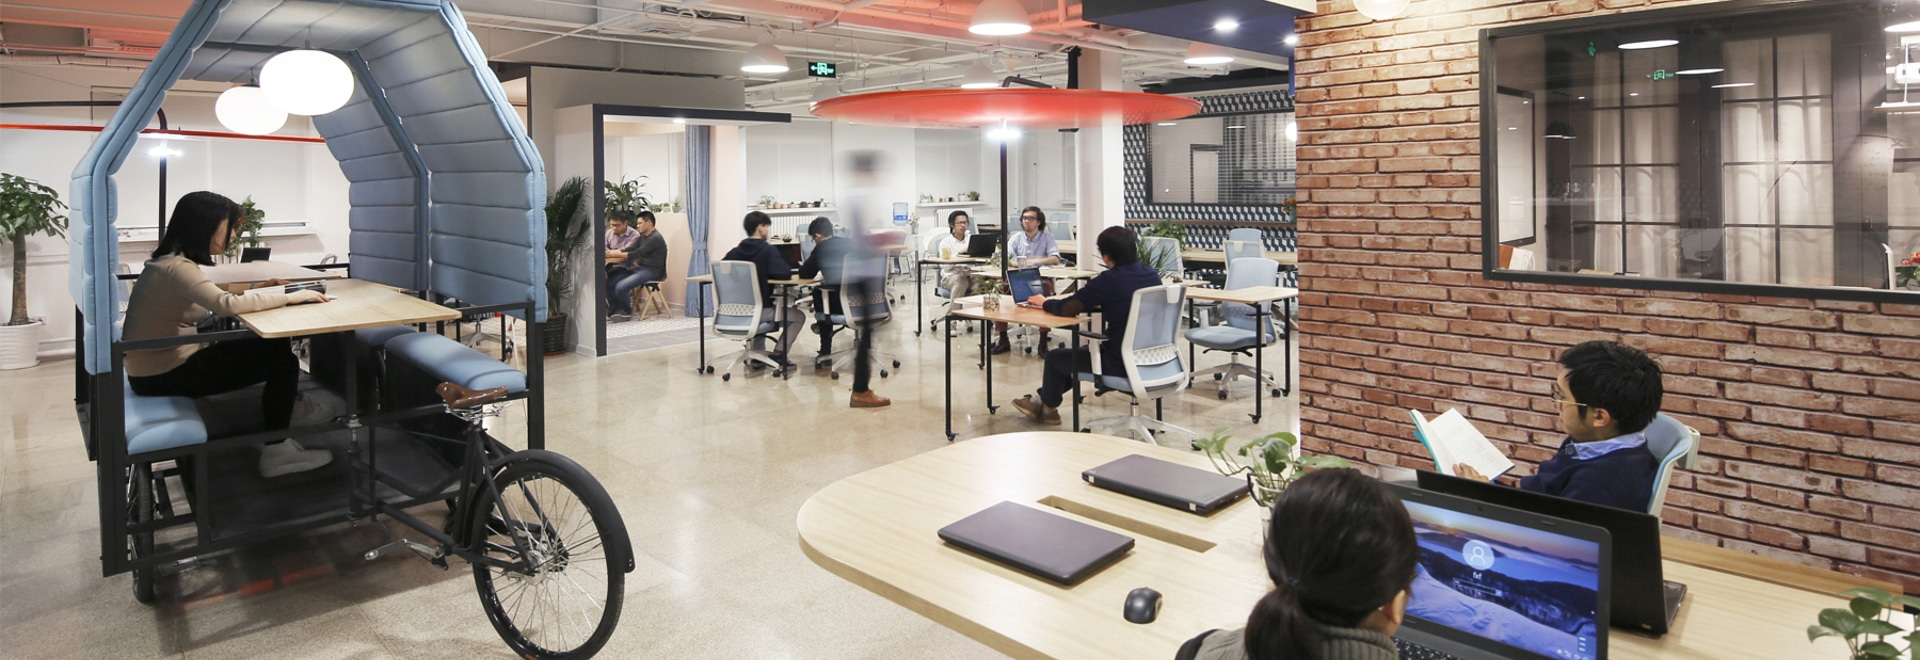 workspace office. People\u0027s Architecture Office Design Workspace In Beijing\u0027s Tech Center O